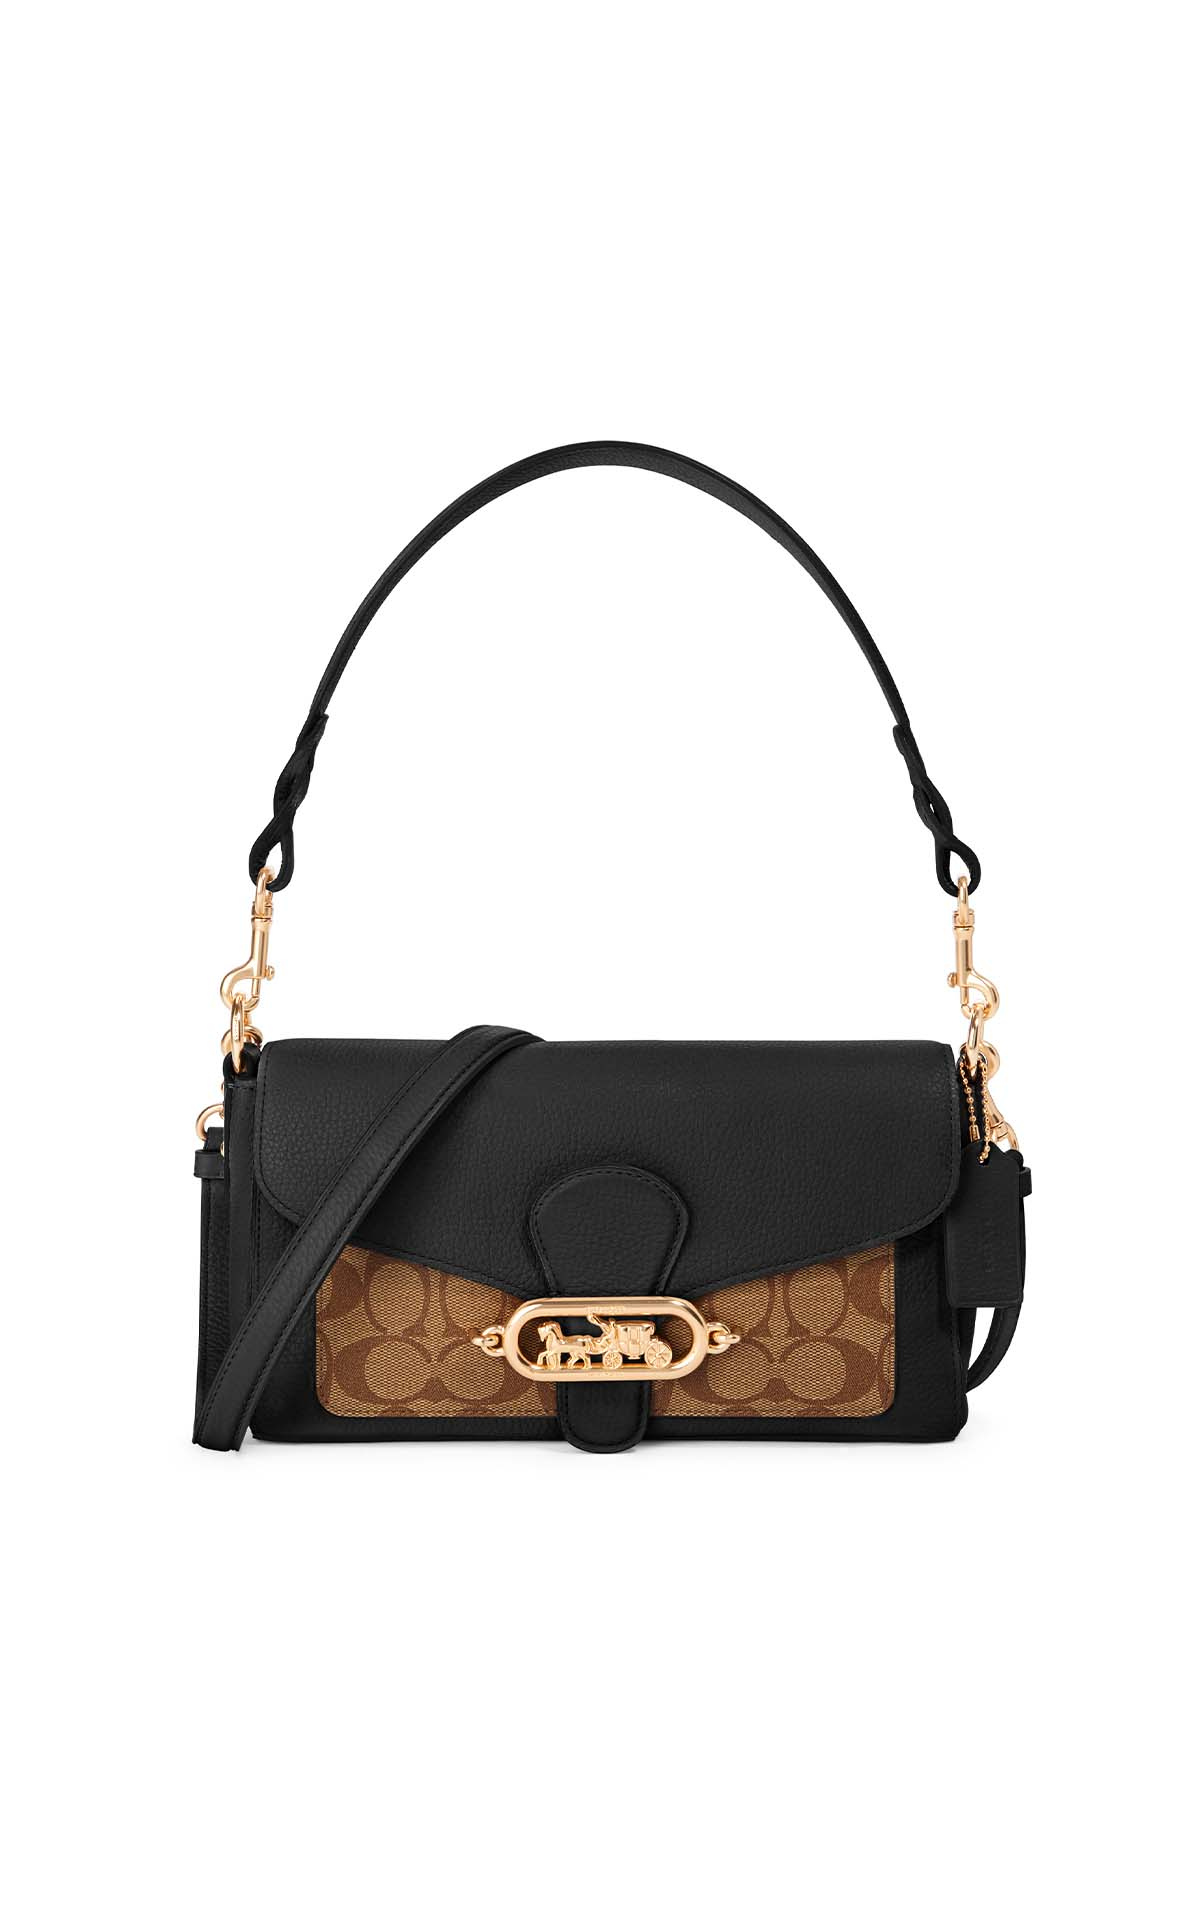 Coach Signature Jade Shoulder Bag in brown/black at The Bicester Village Shopping Collection